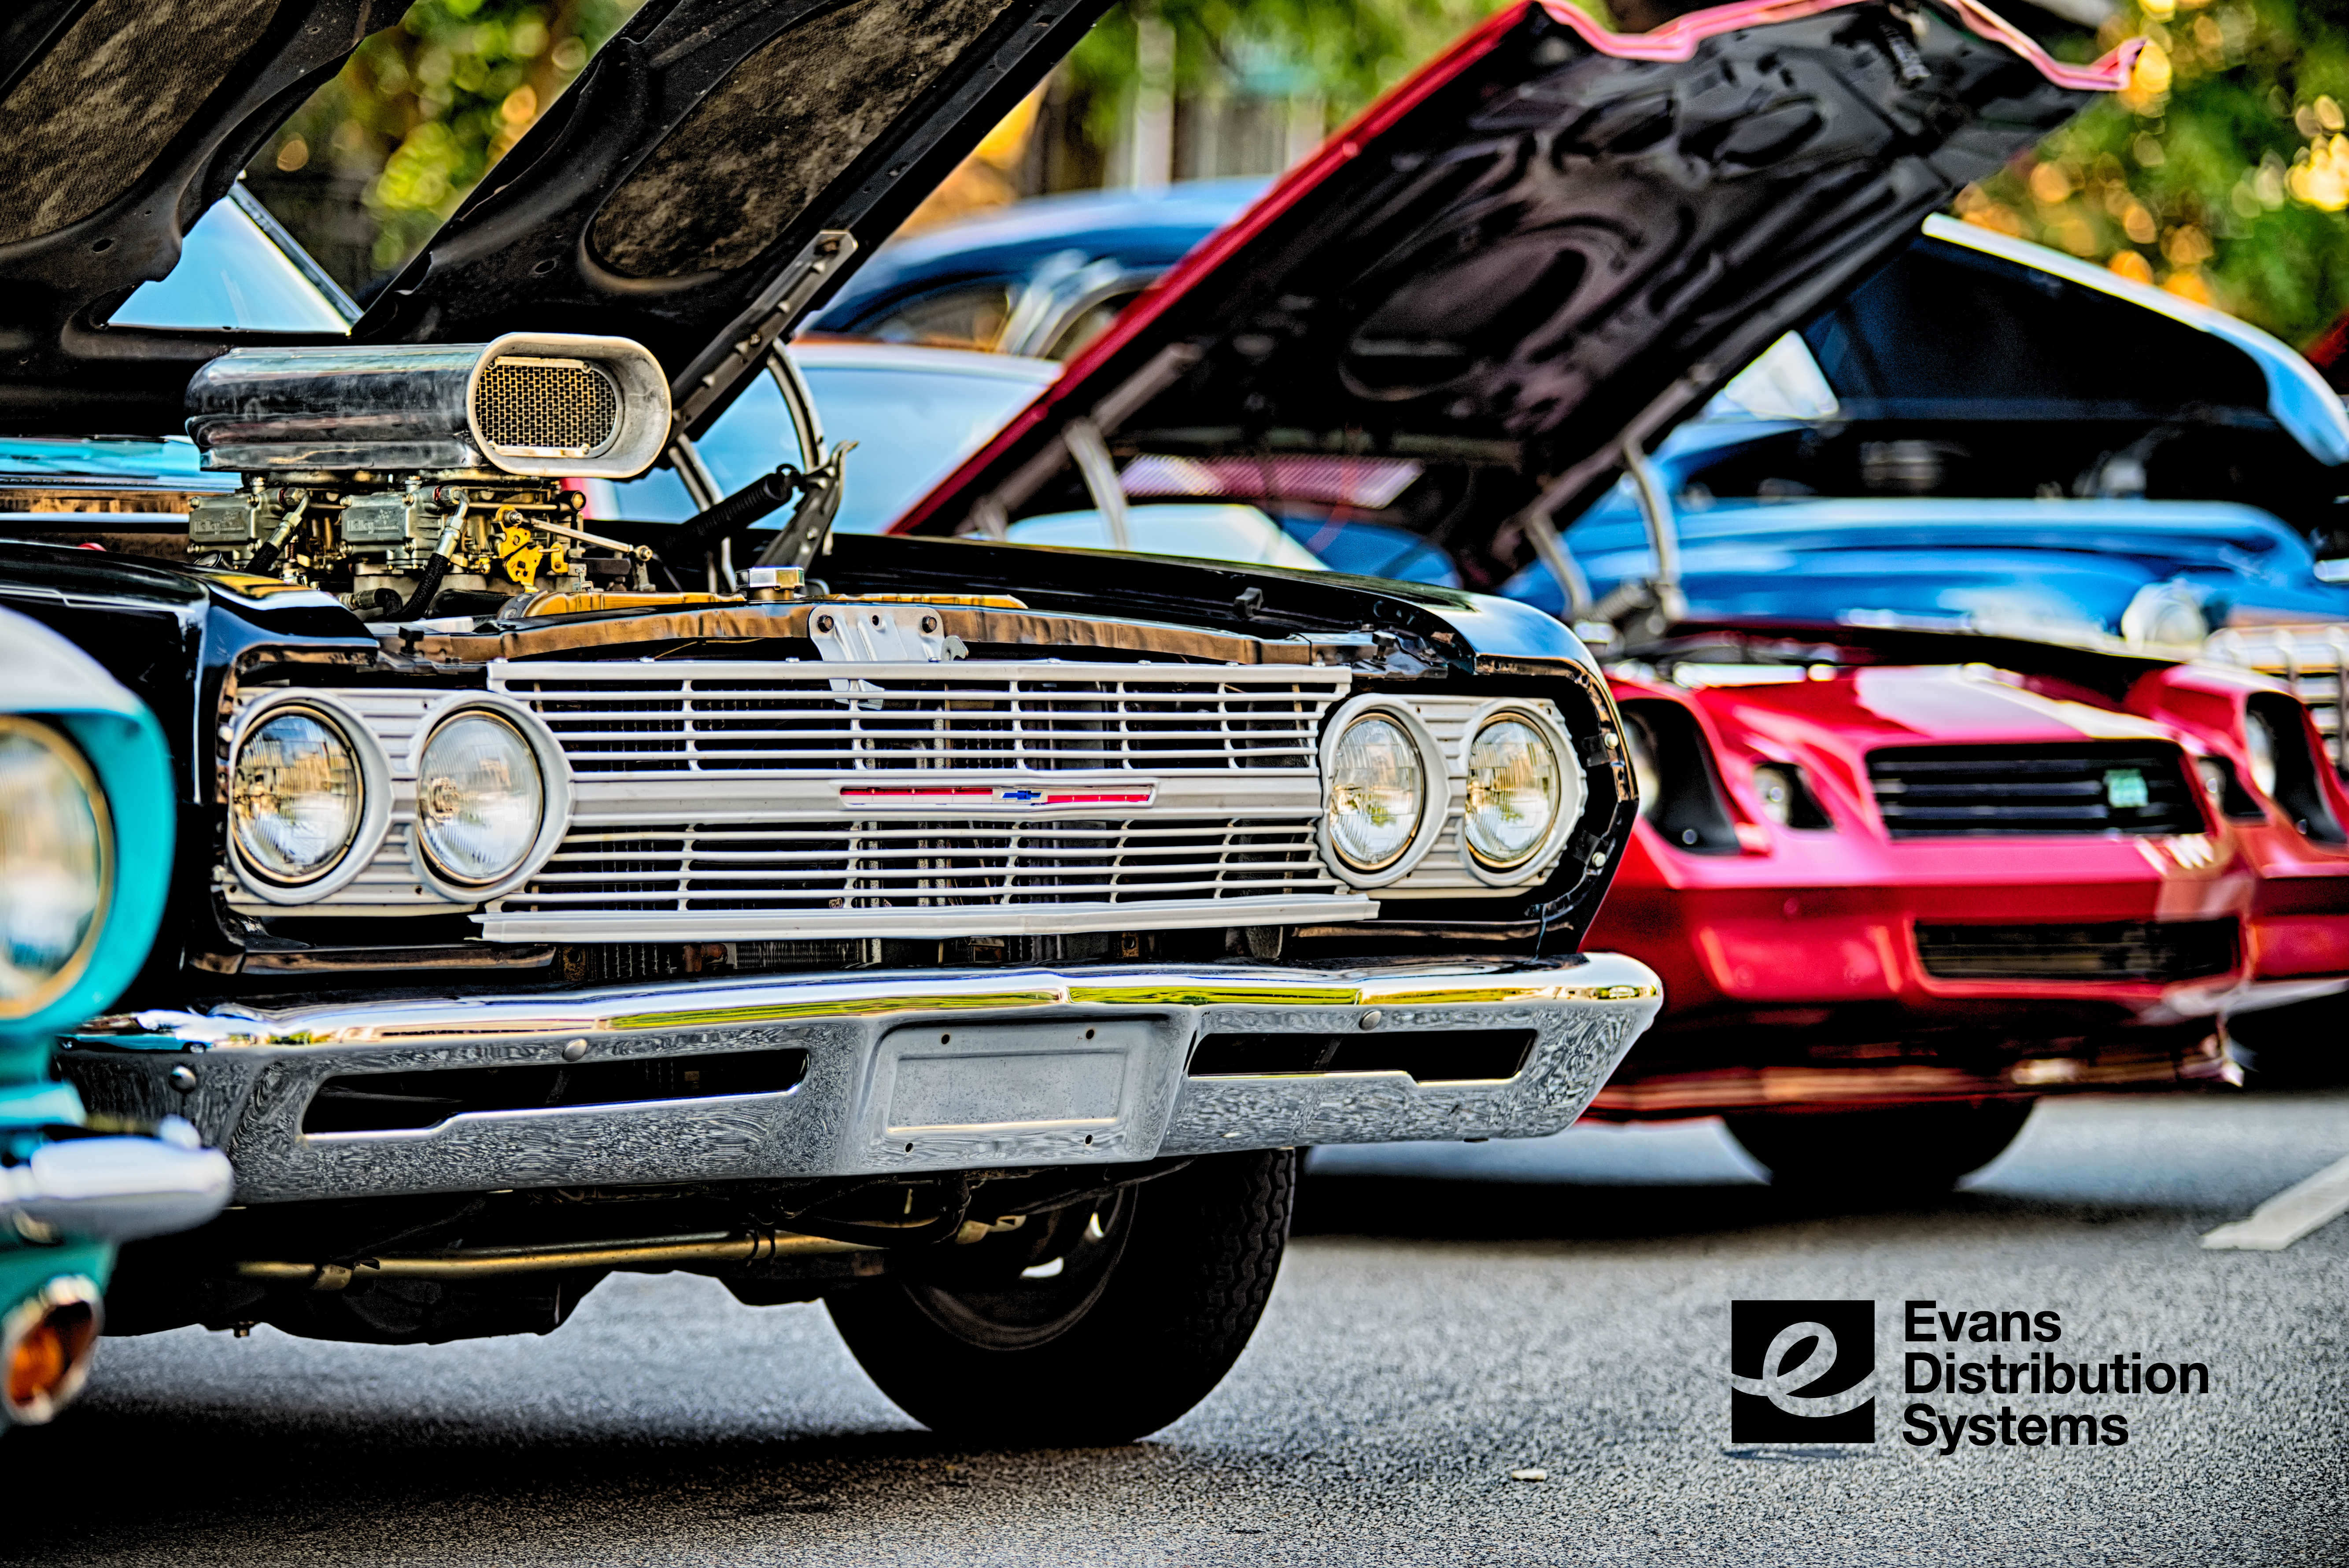 Cruise on Down to Woodward Avenue this Weekend